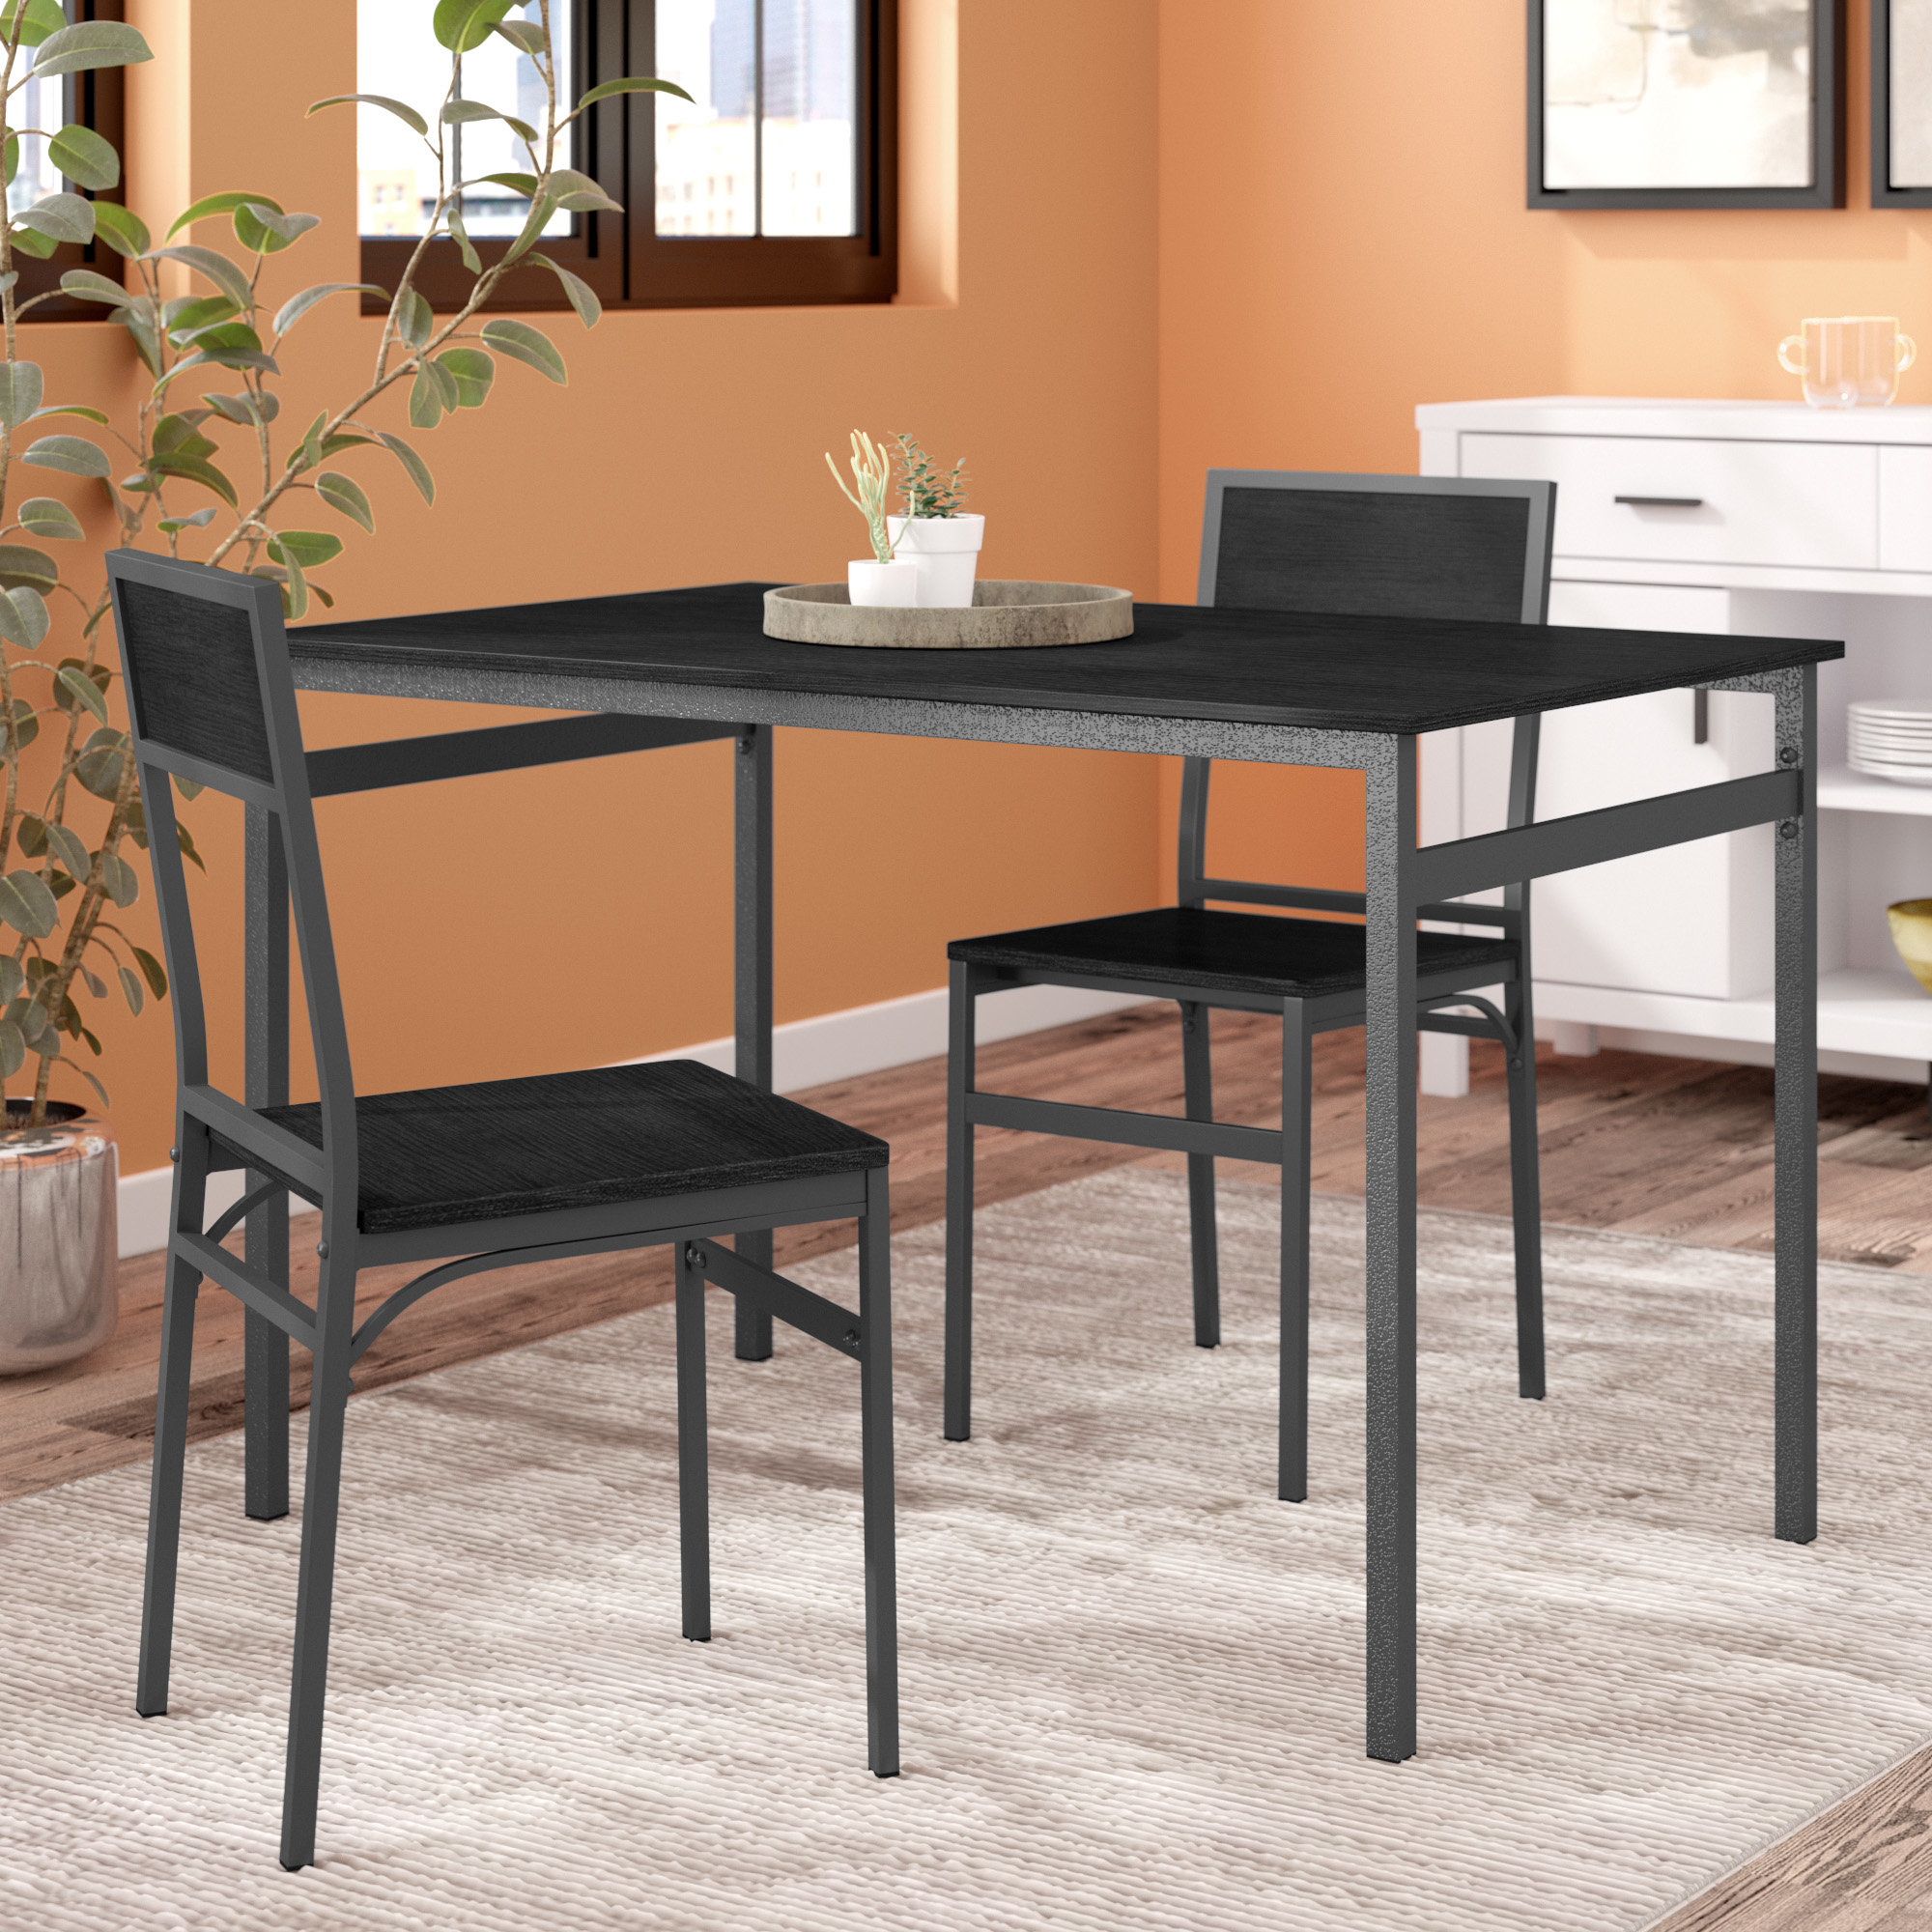 Baillie 3 Piece Dining Sets For Well Liked Latitude Run Springfield 3 Piece Dining Set & Reviews (View 4 of 20)